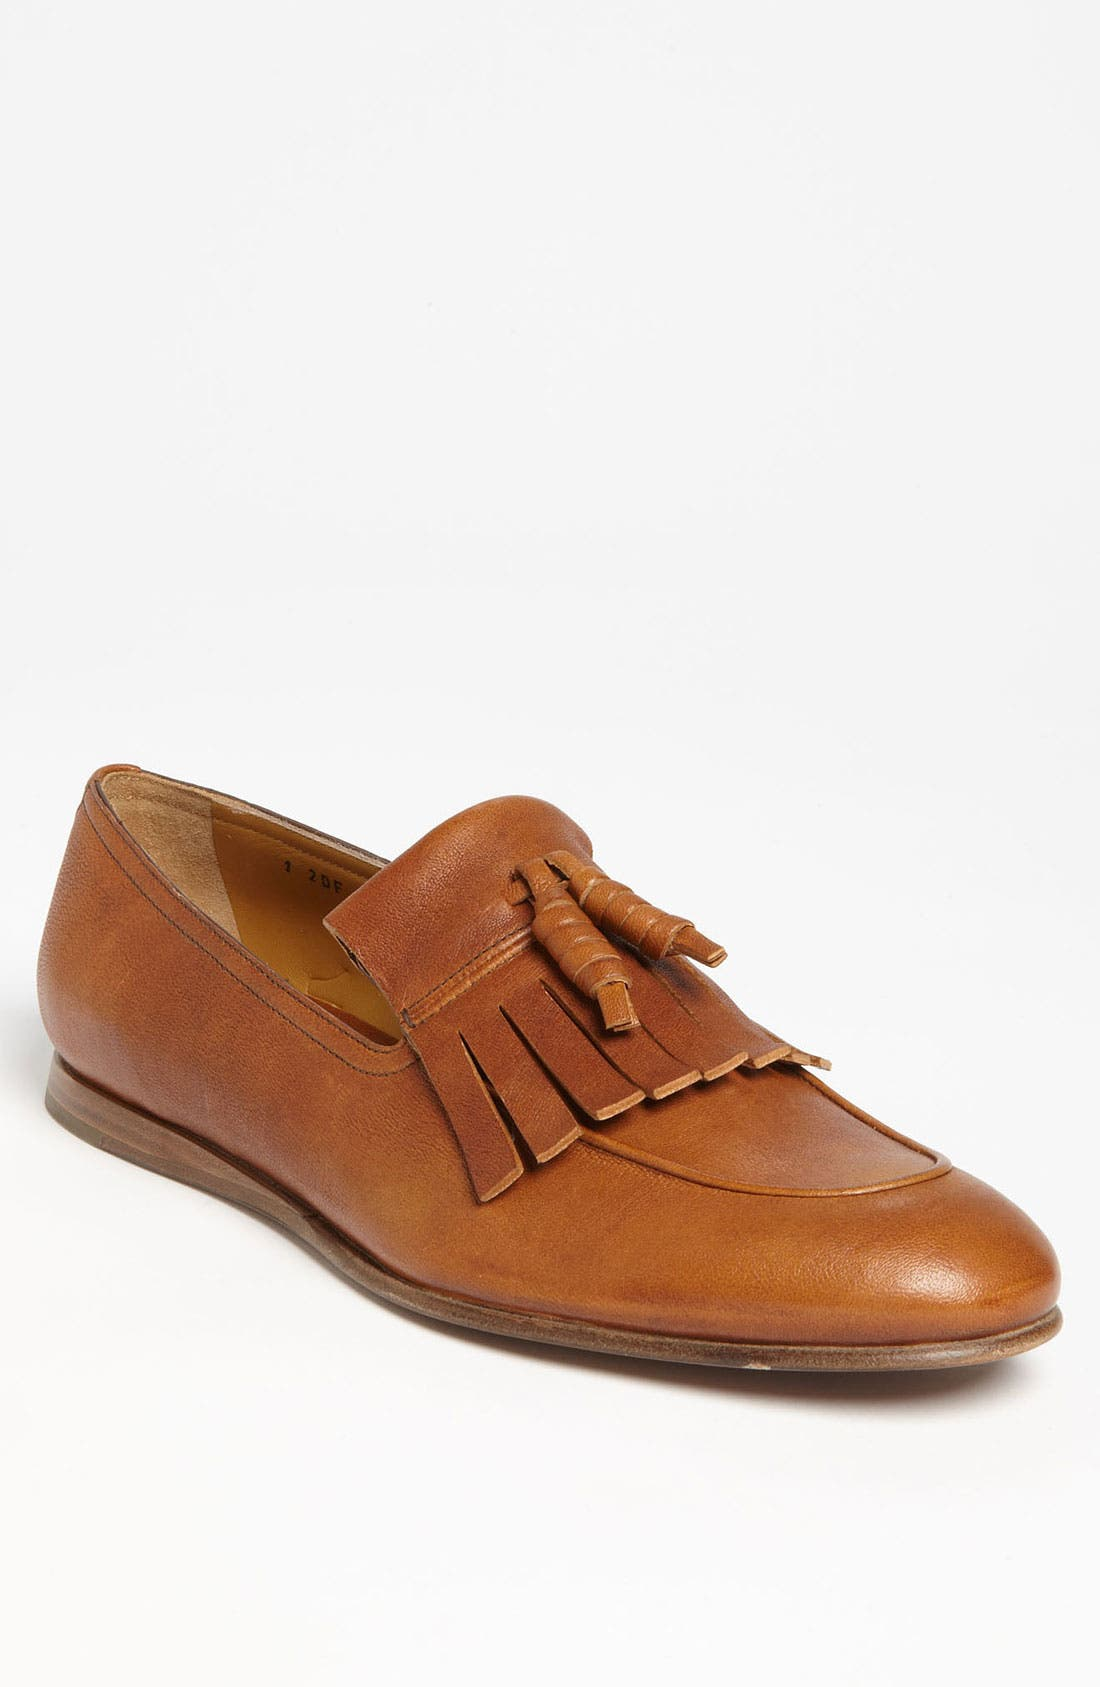 Main Image - Prada Kiltie Loafer